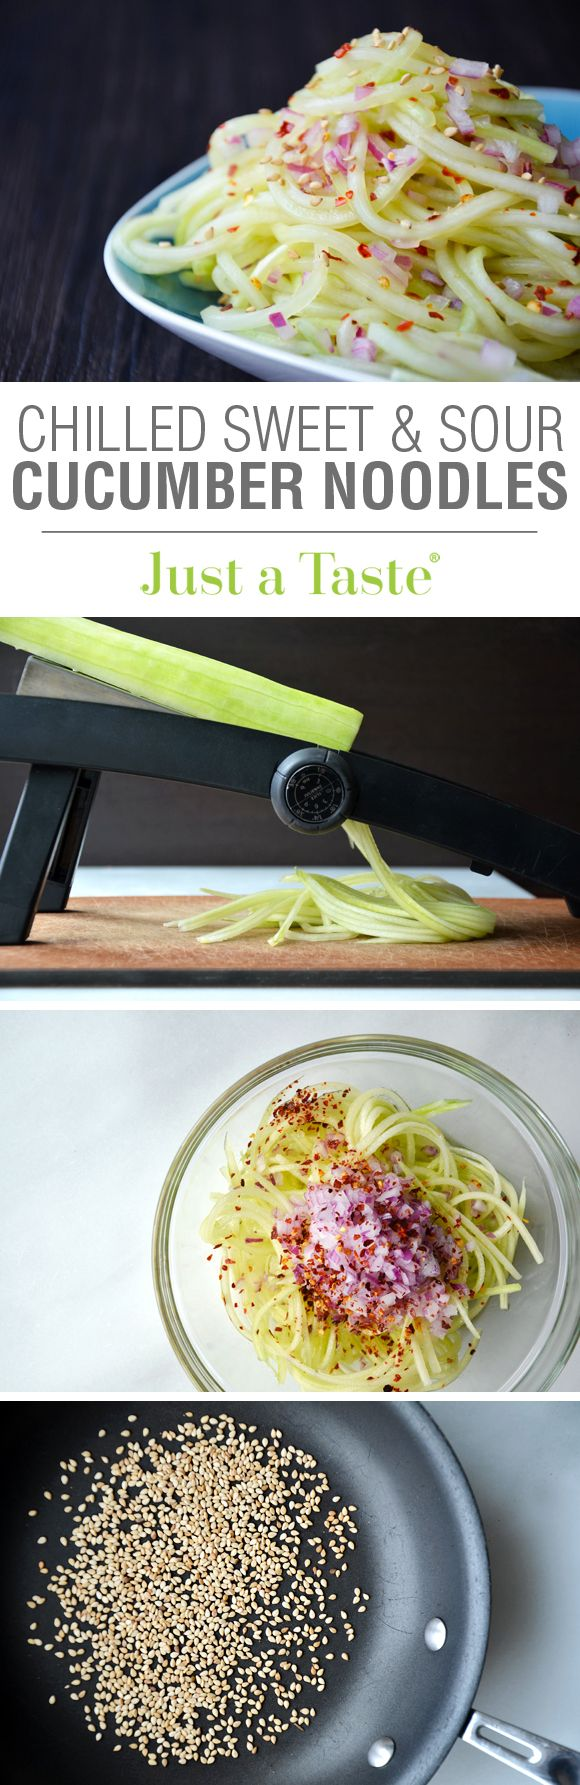 Chilled Sweet and Sour Cucumber Noodles #recipe from justataste.com